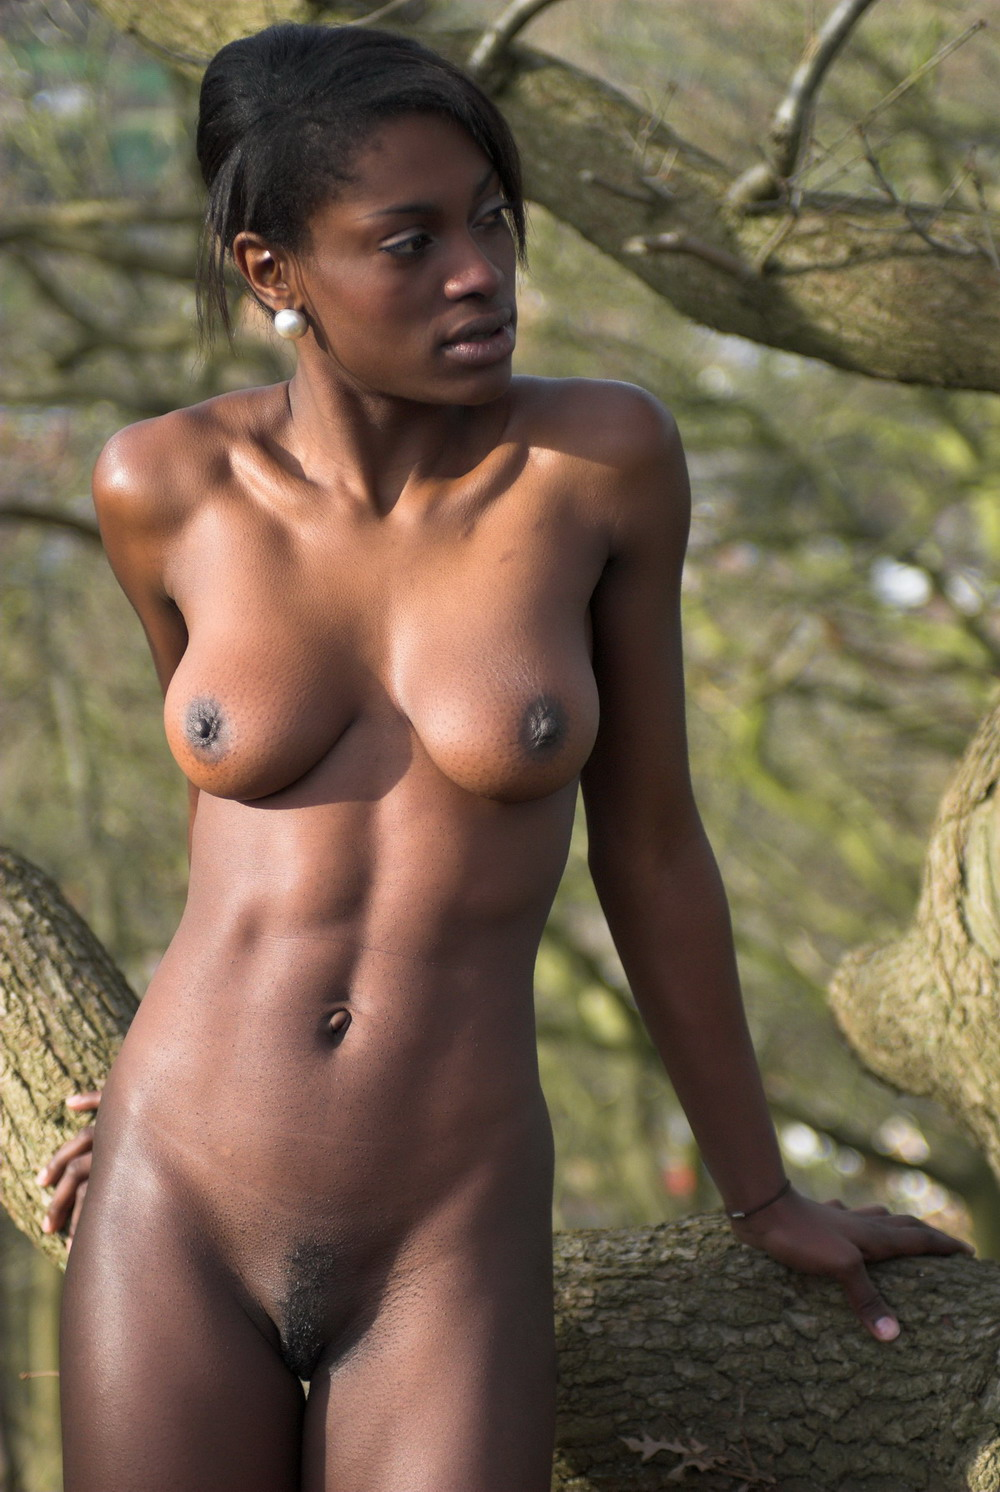 real-naked-black-women-in-africa-screaming-fuck-small-girl